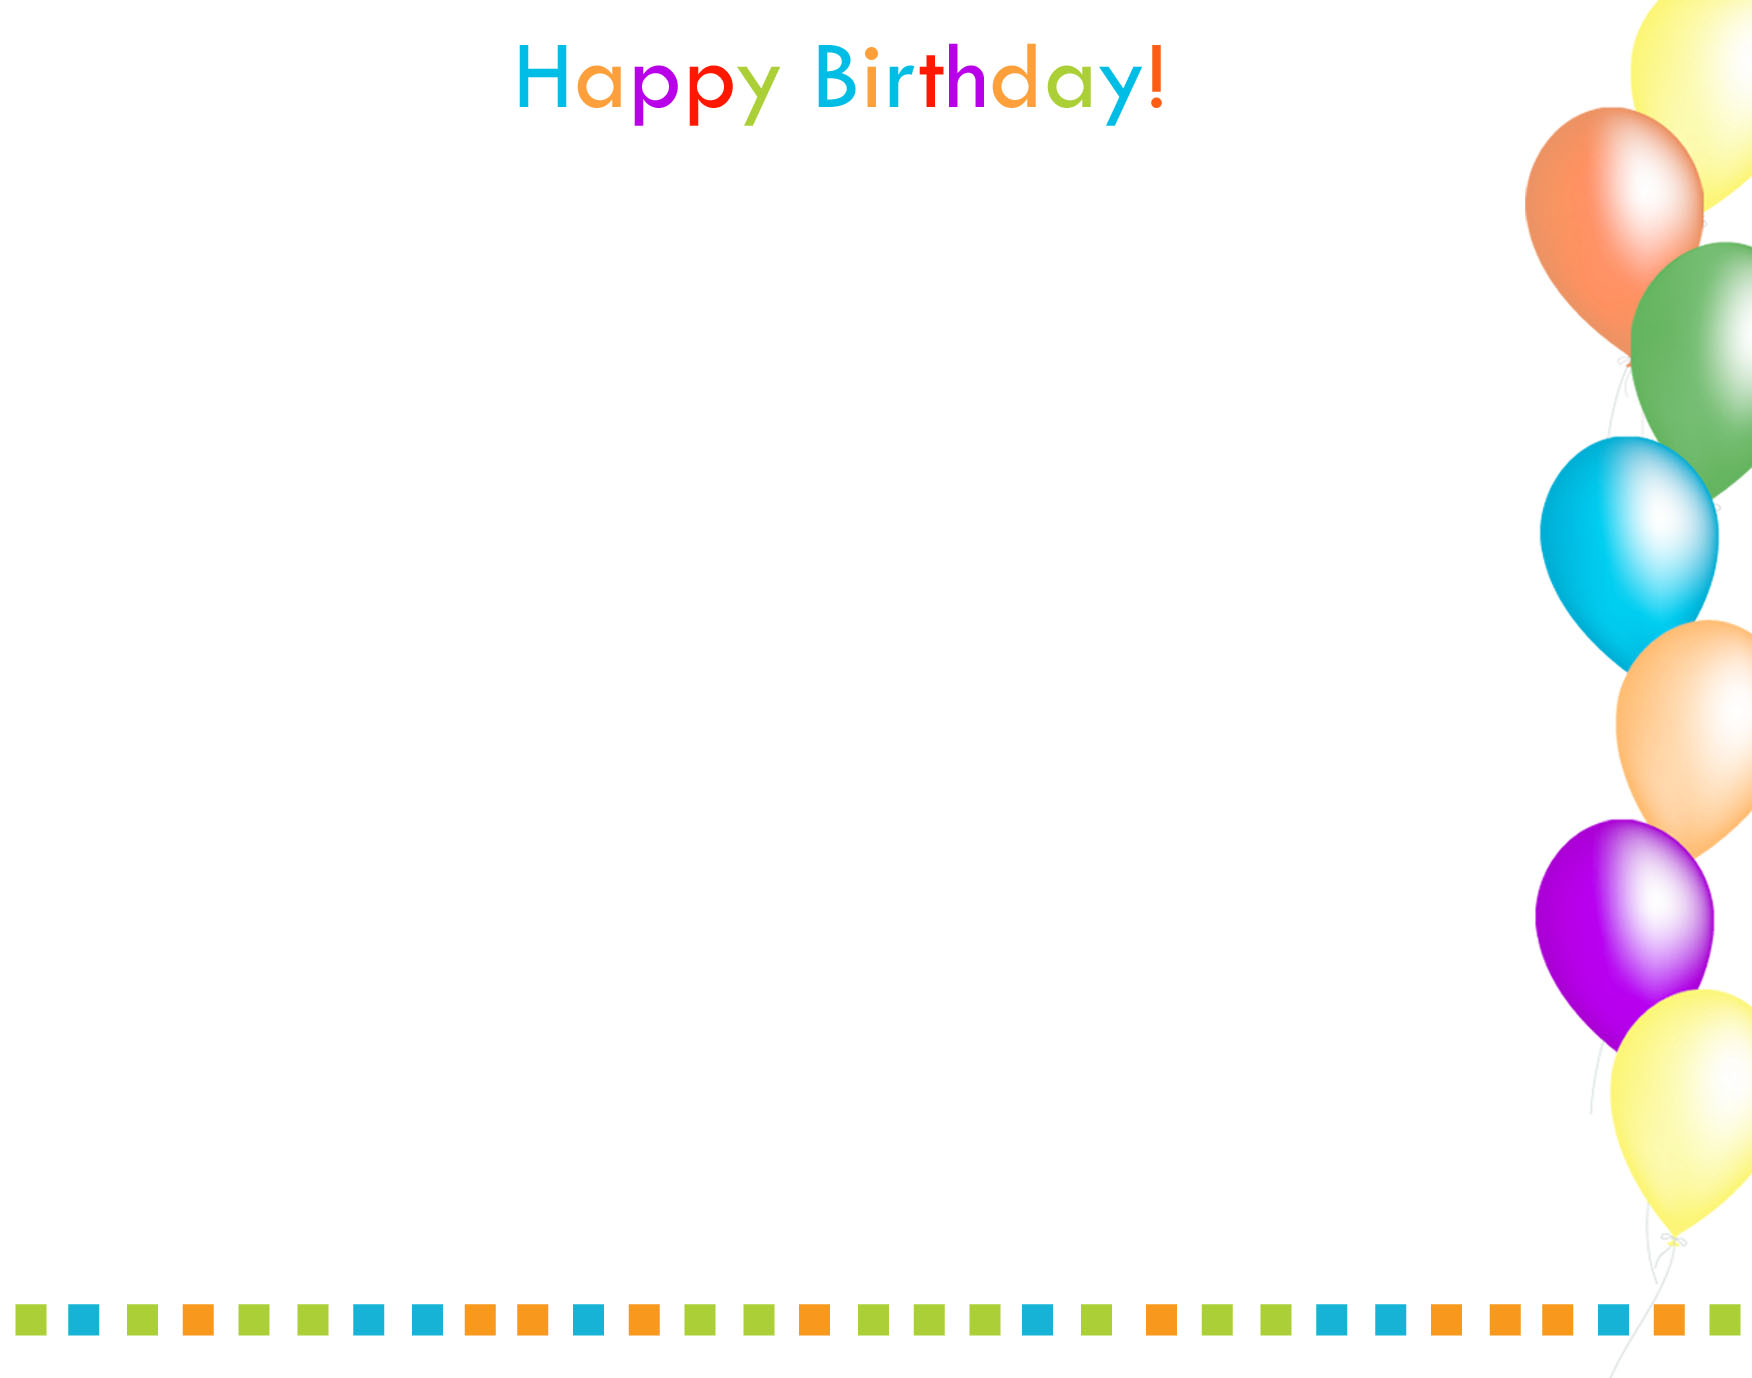 Happy Birthday Party Birthday Party Background Design 1752x1378